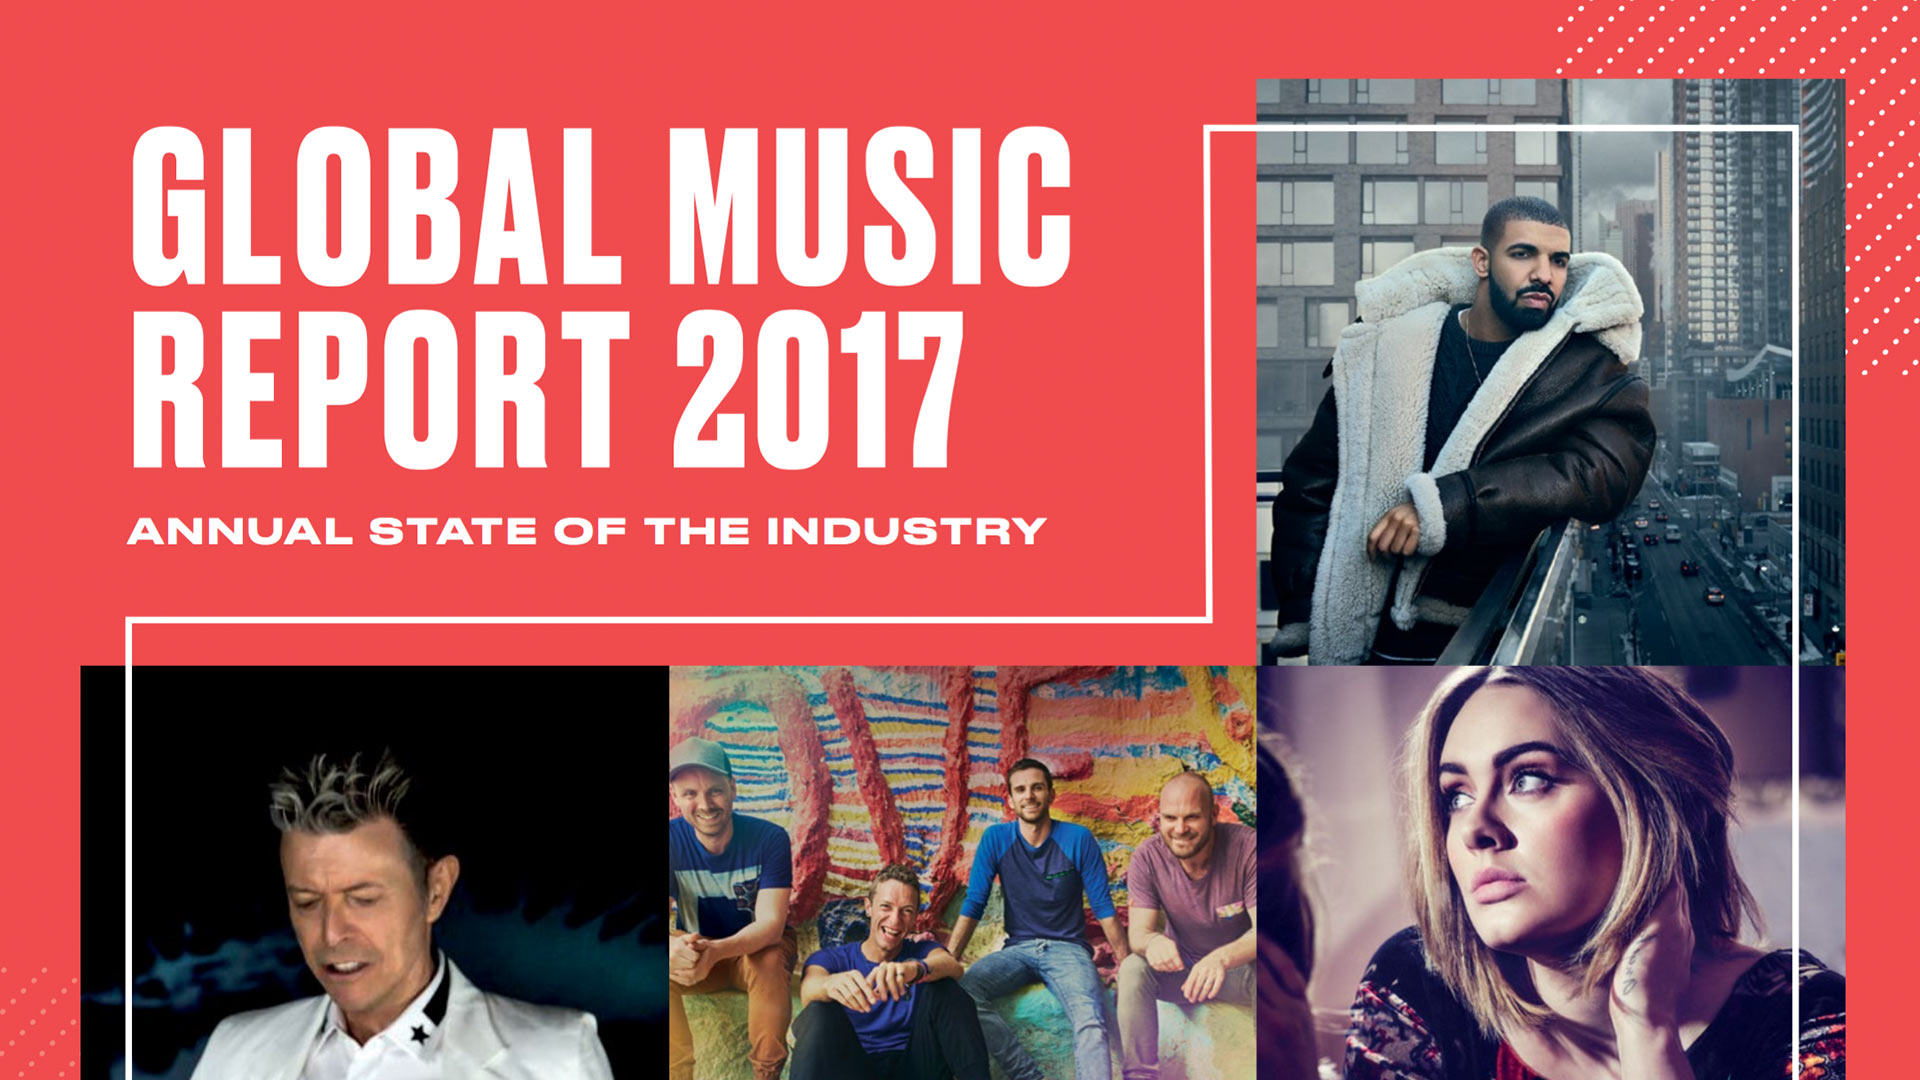 Fairness Rocks News GLOBAL MUSIC REPORT 2017 ANNUAL STATE OF THE INDUSTRY